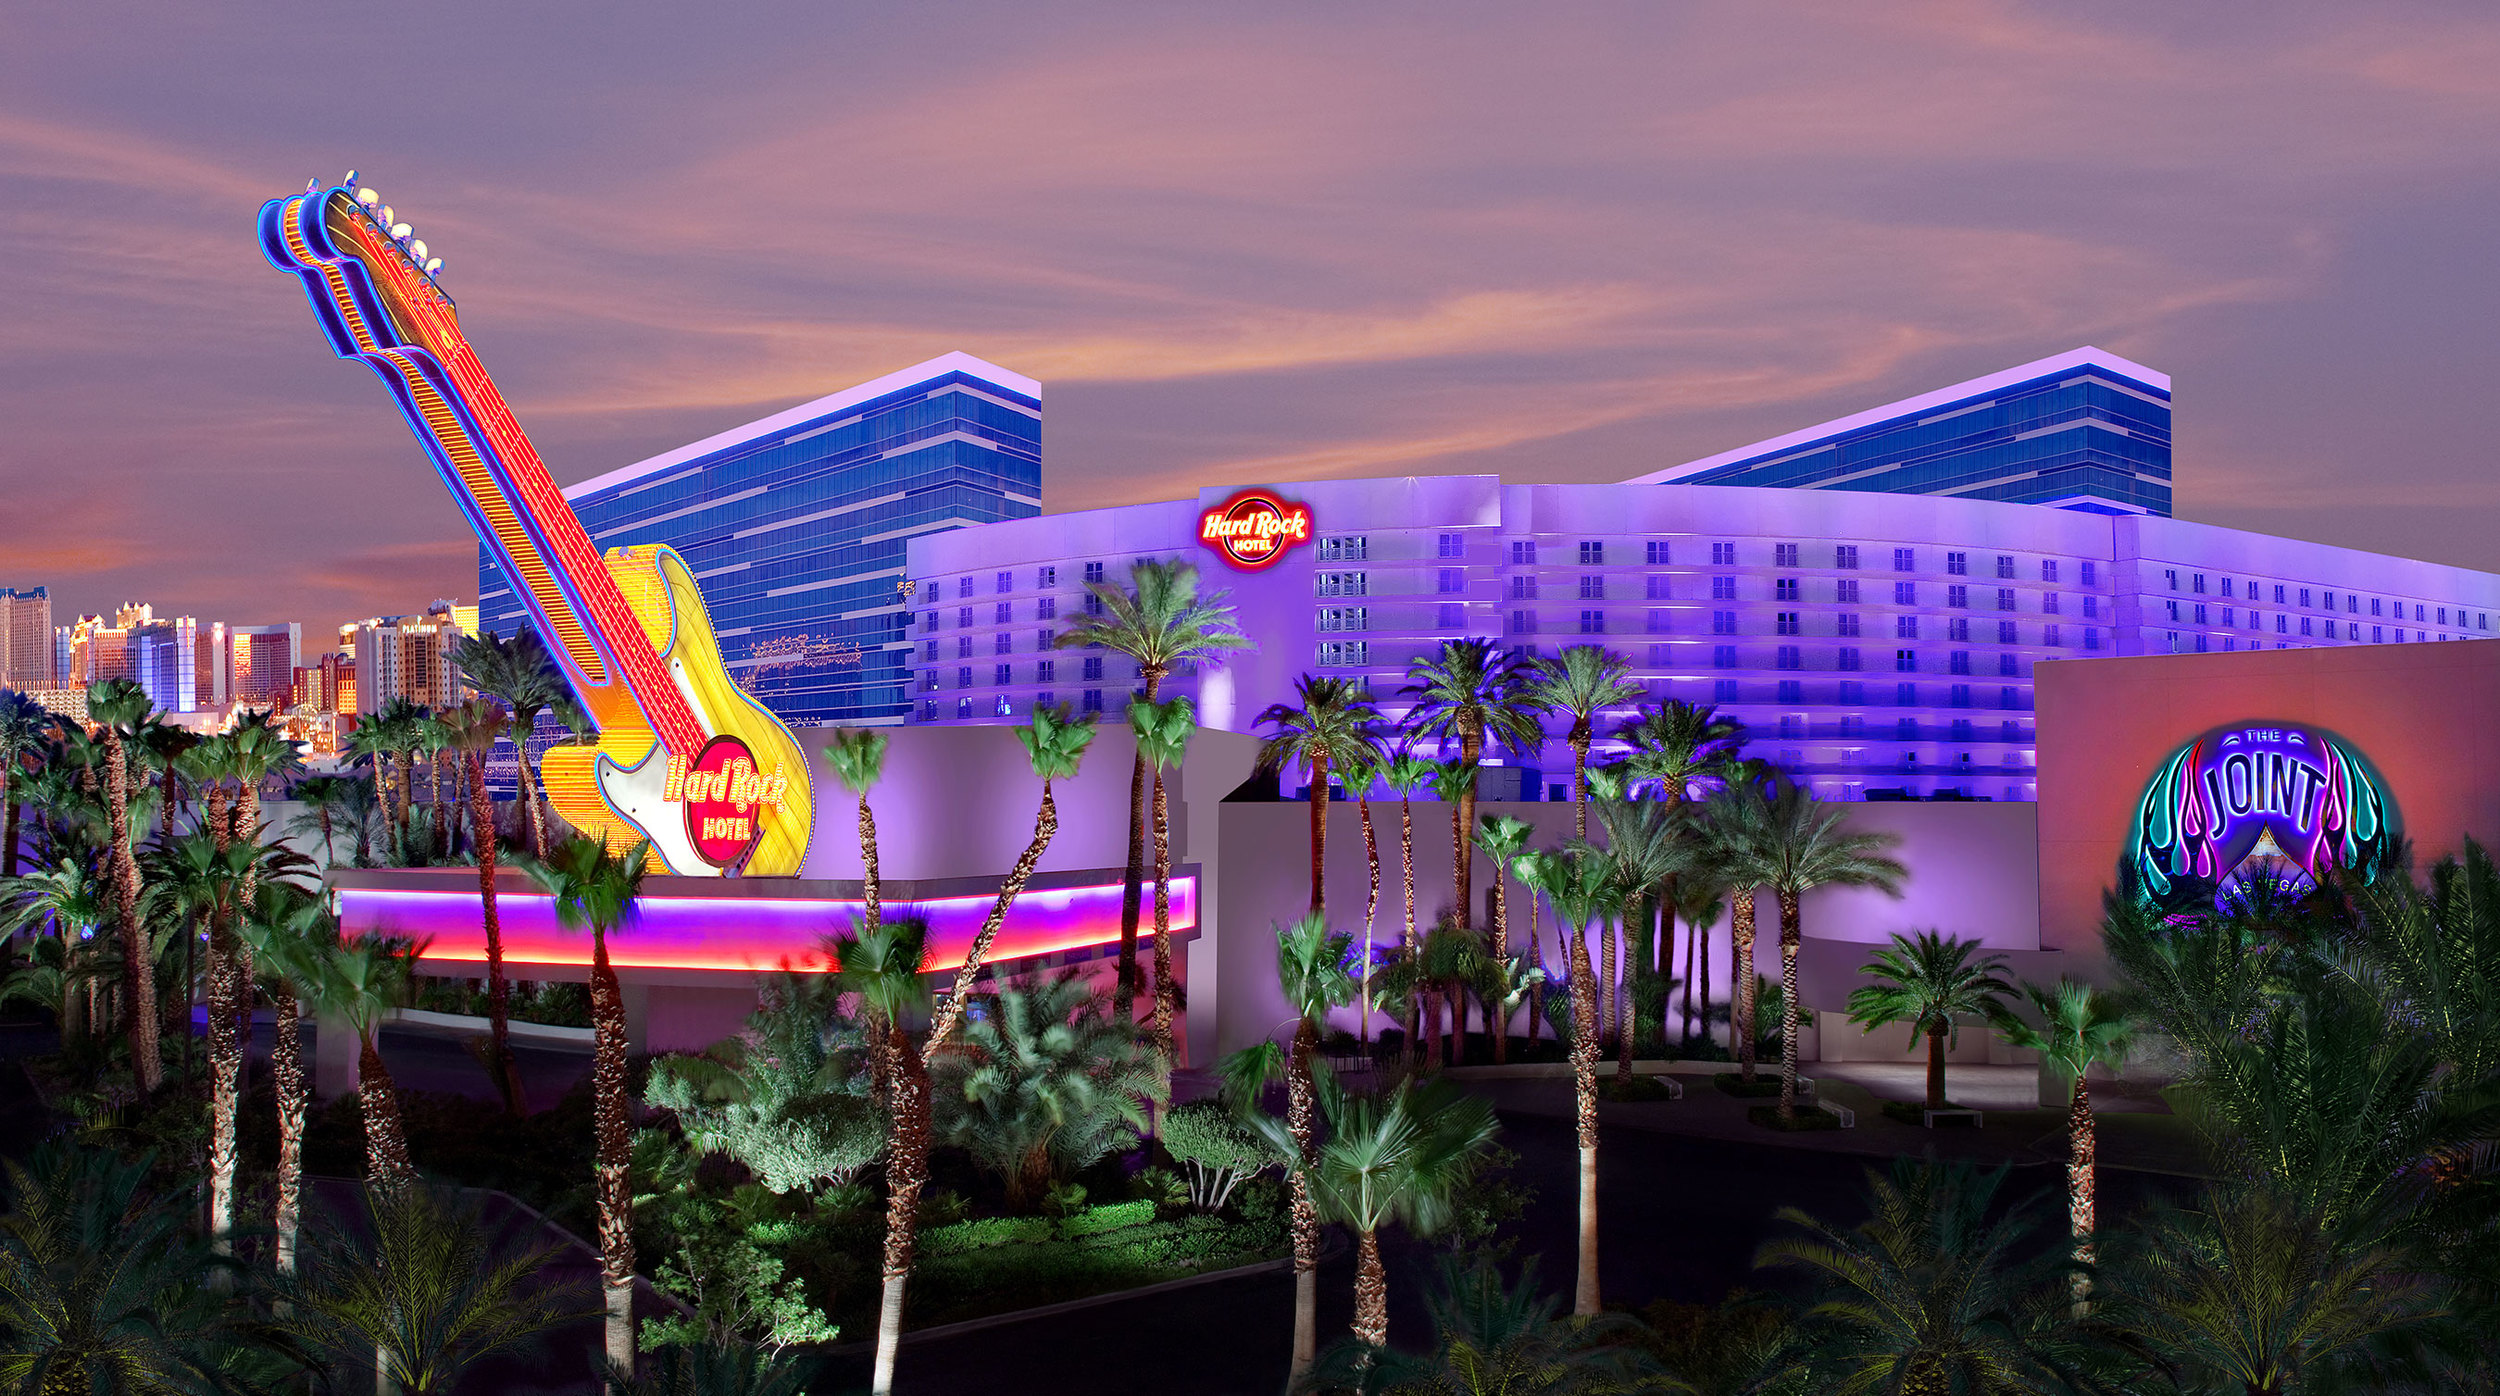 65965-hard-rock-hotel-casino-exterior-original.jpg